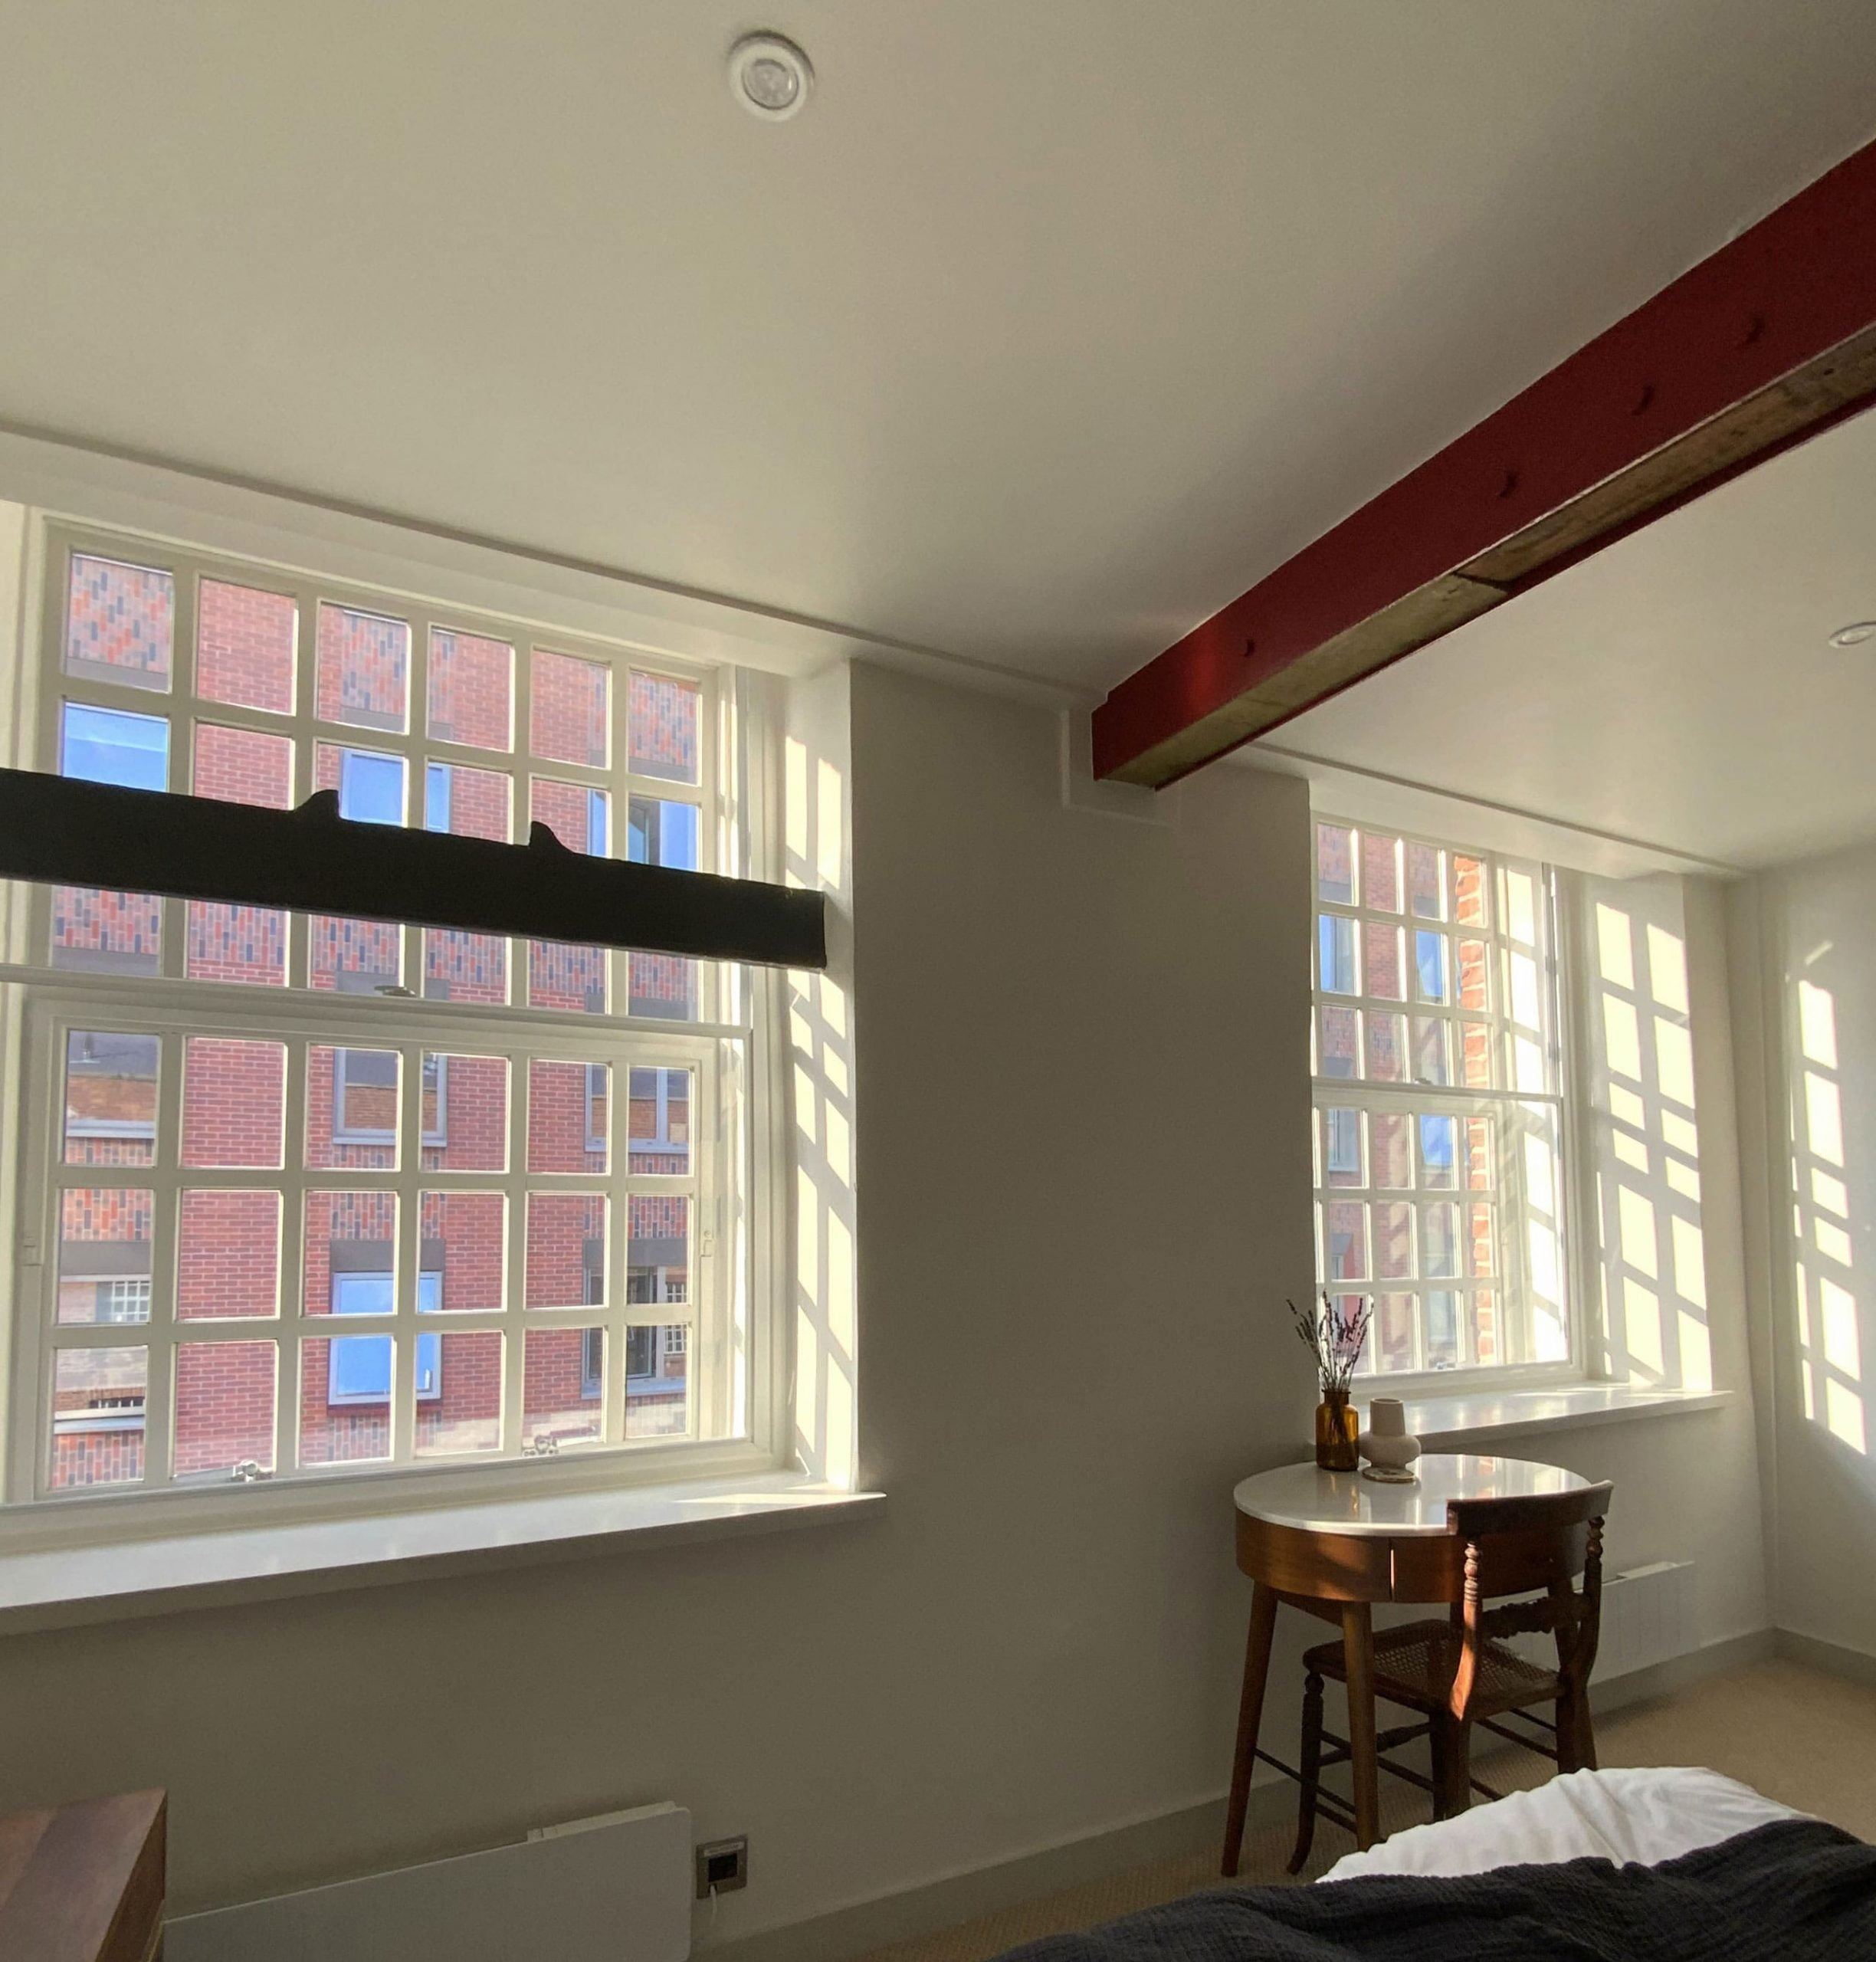 Listed Property fitted with Granada Secondary Glazing